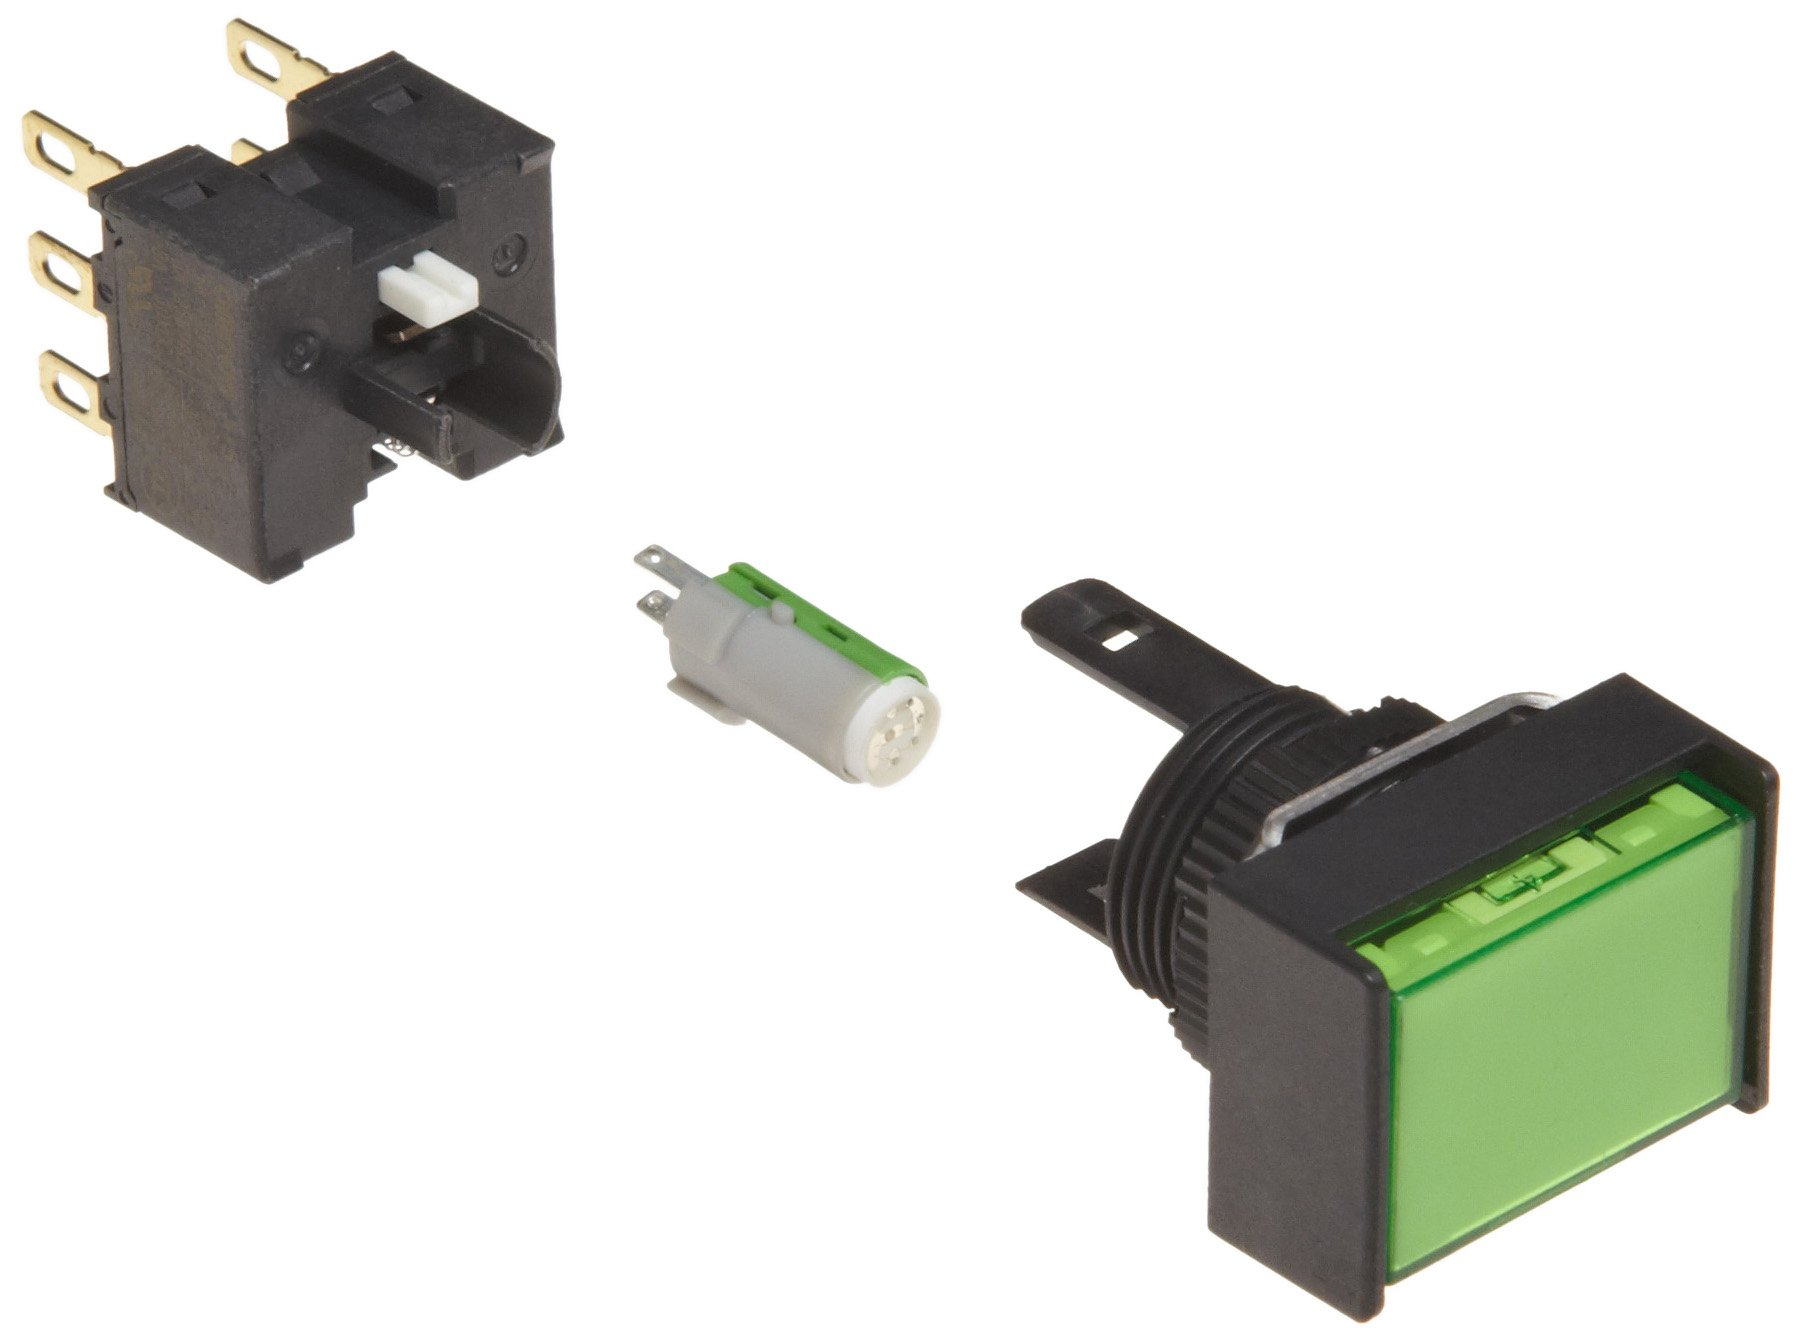 Omron A16L-JGA-24D-2 Two Way Guard Type Pushbutton and Switch, Solder Terminal, 16mm Mounting Aperture, LED Lighted, Alternate Operation, Rectangular, Green, 24 VDC Rated Voltage, Double Pole Double Throw Contacts